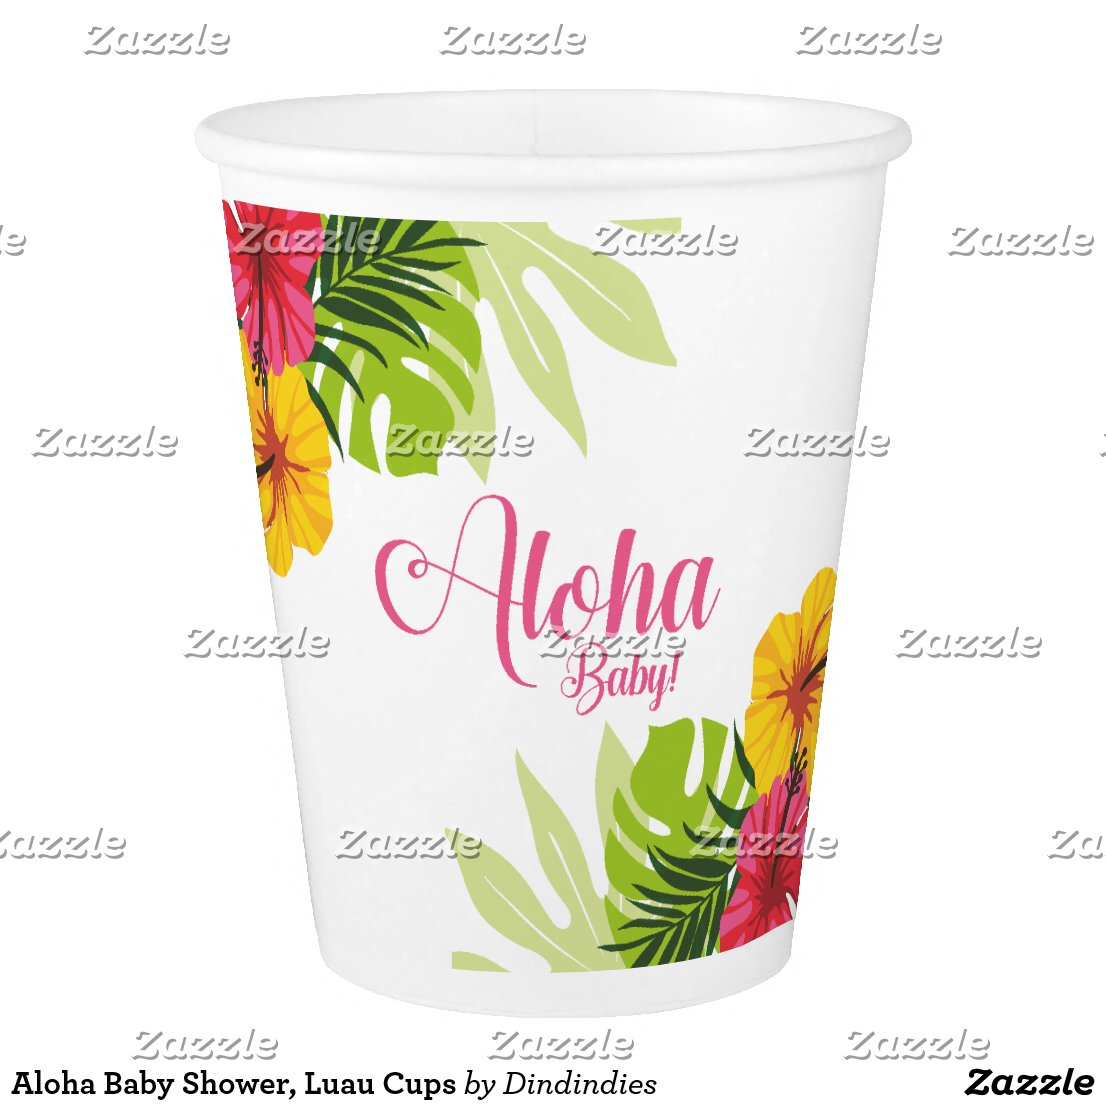 Aloha Baby Shower, Luau Cups